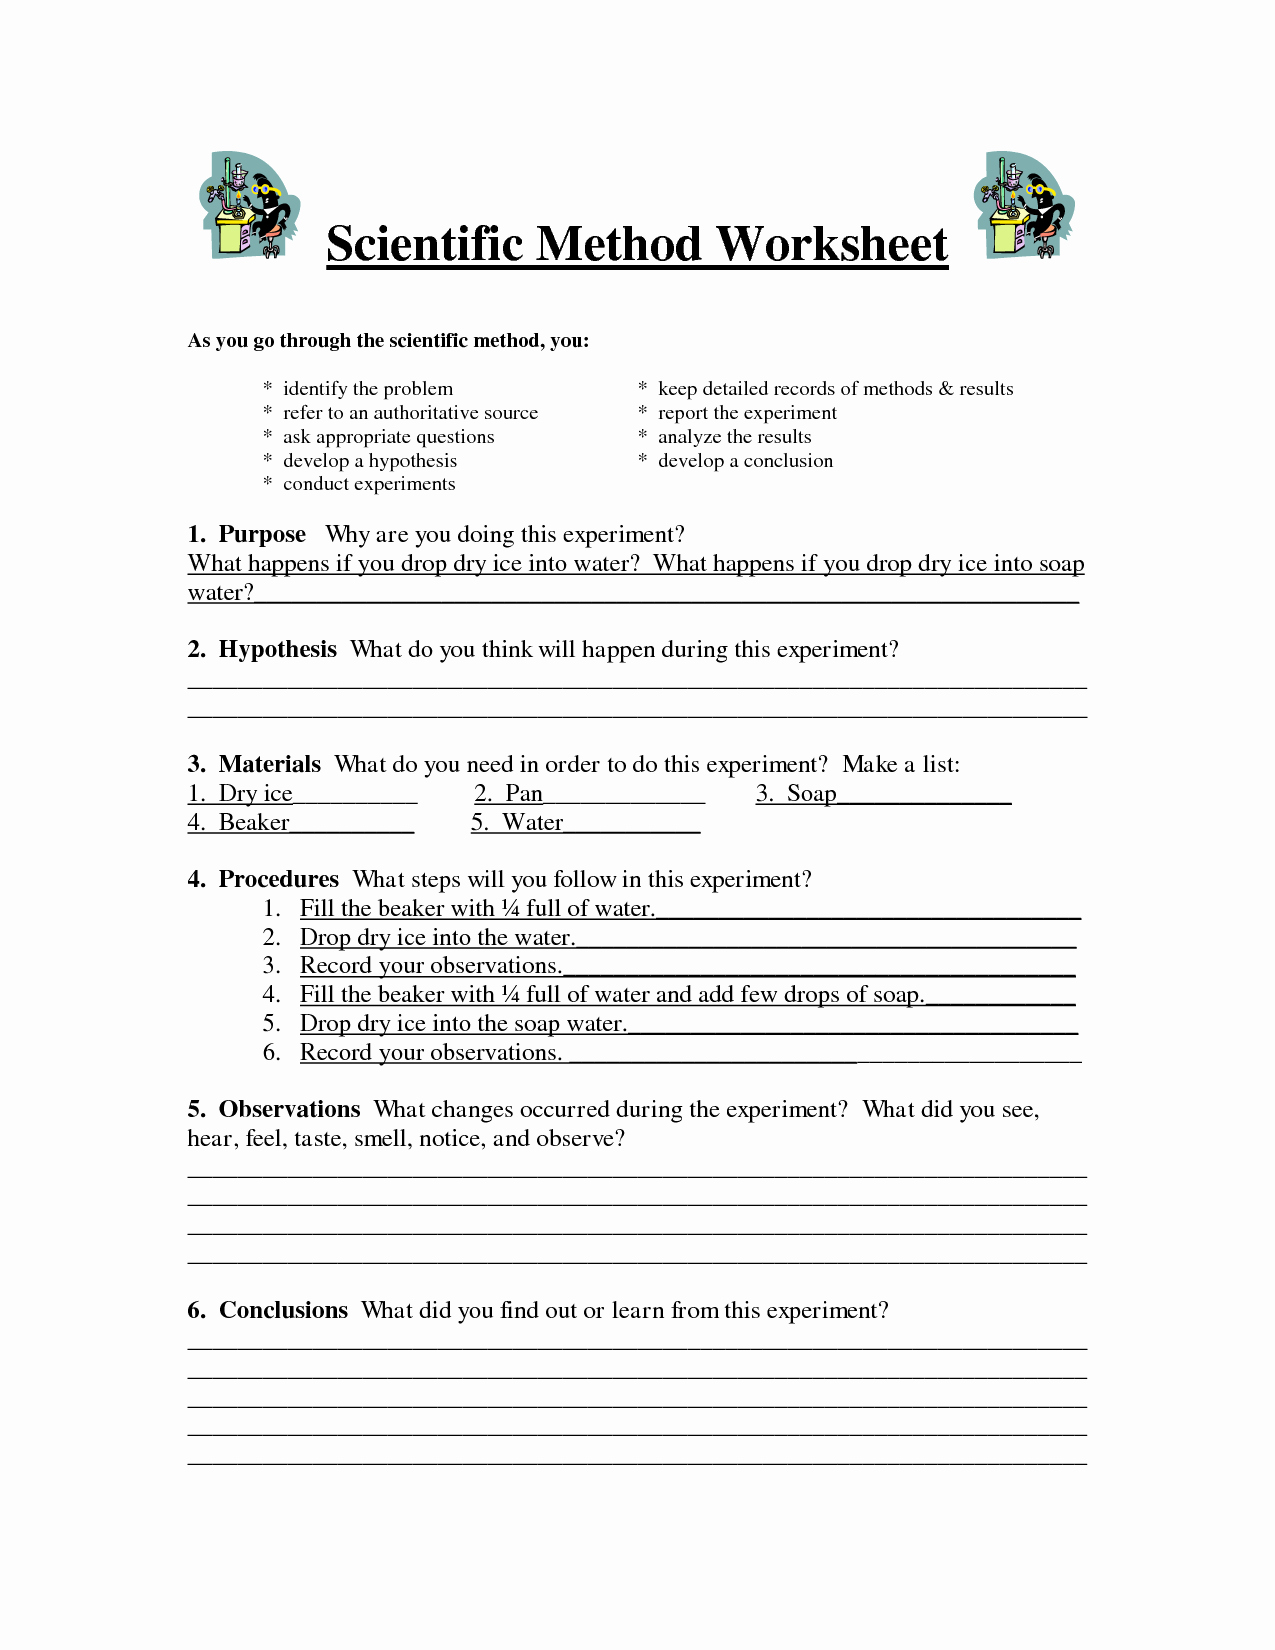 Scientific Method Examples Worksheet Beautiful the Scientific Method Worksheet Driverlayer Search Engine